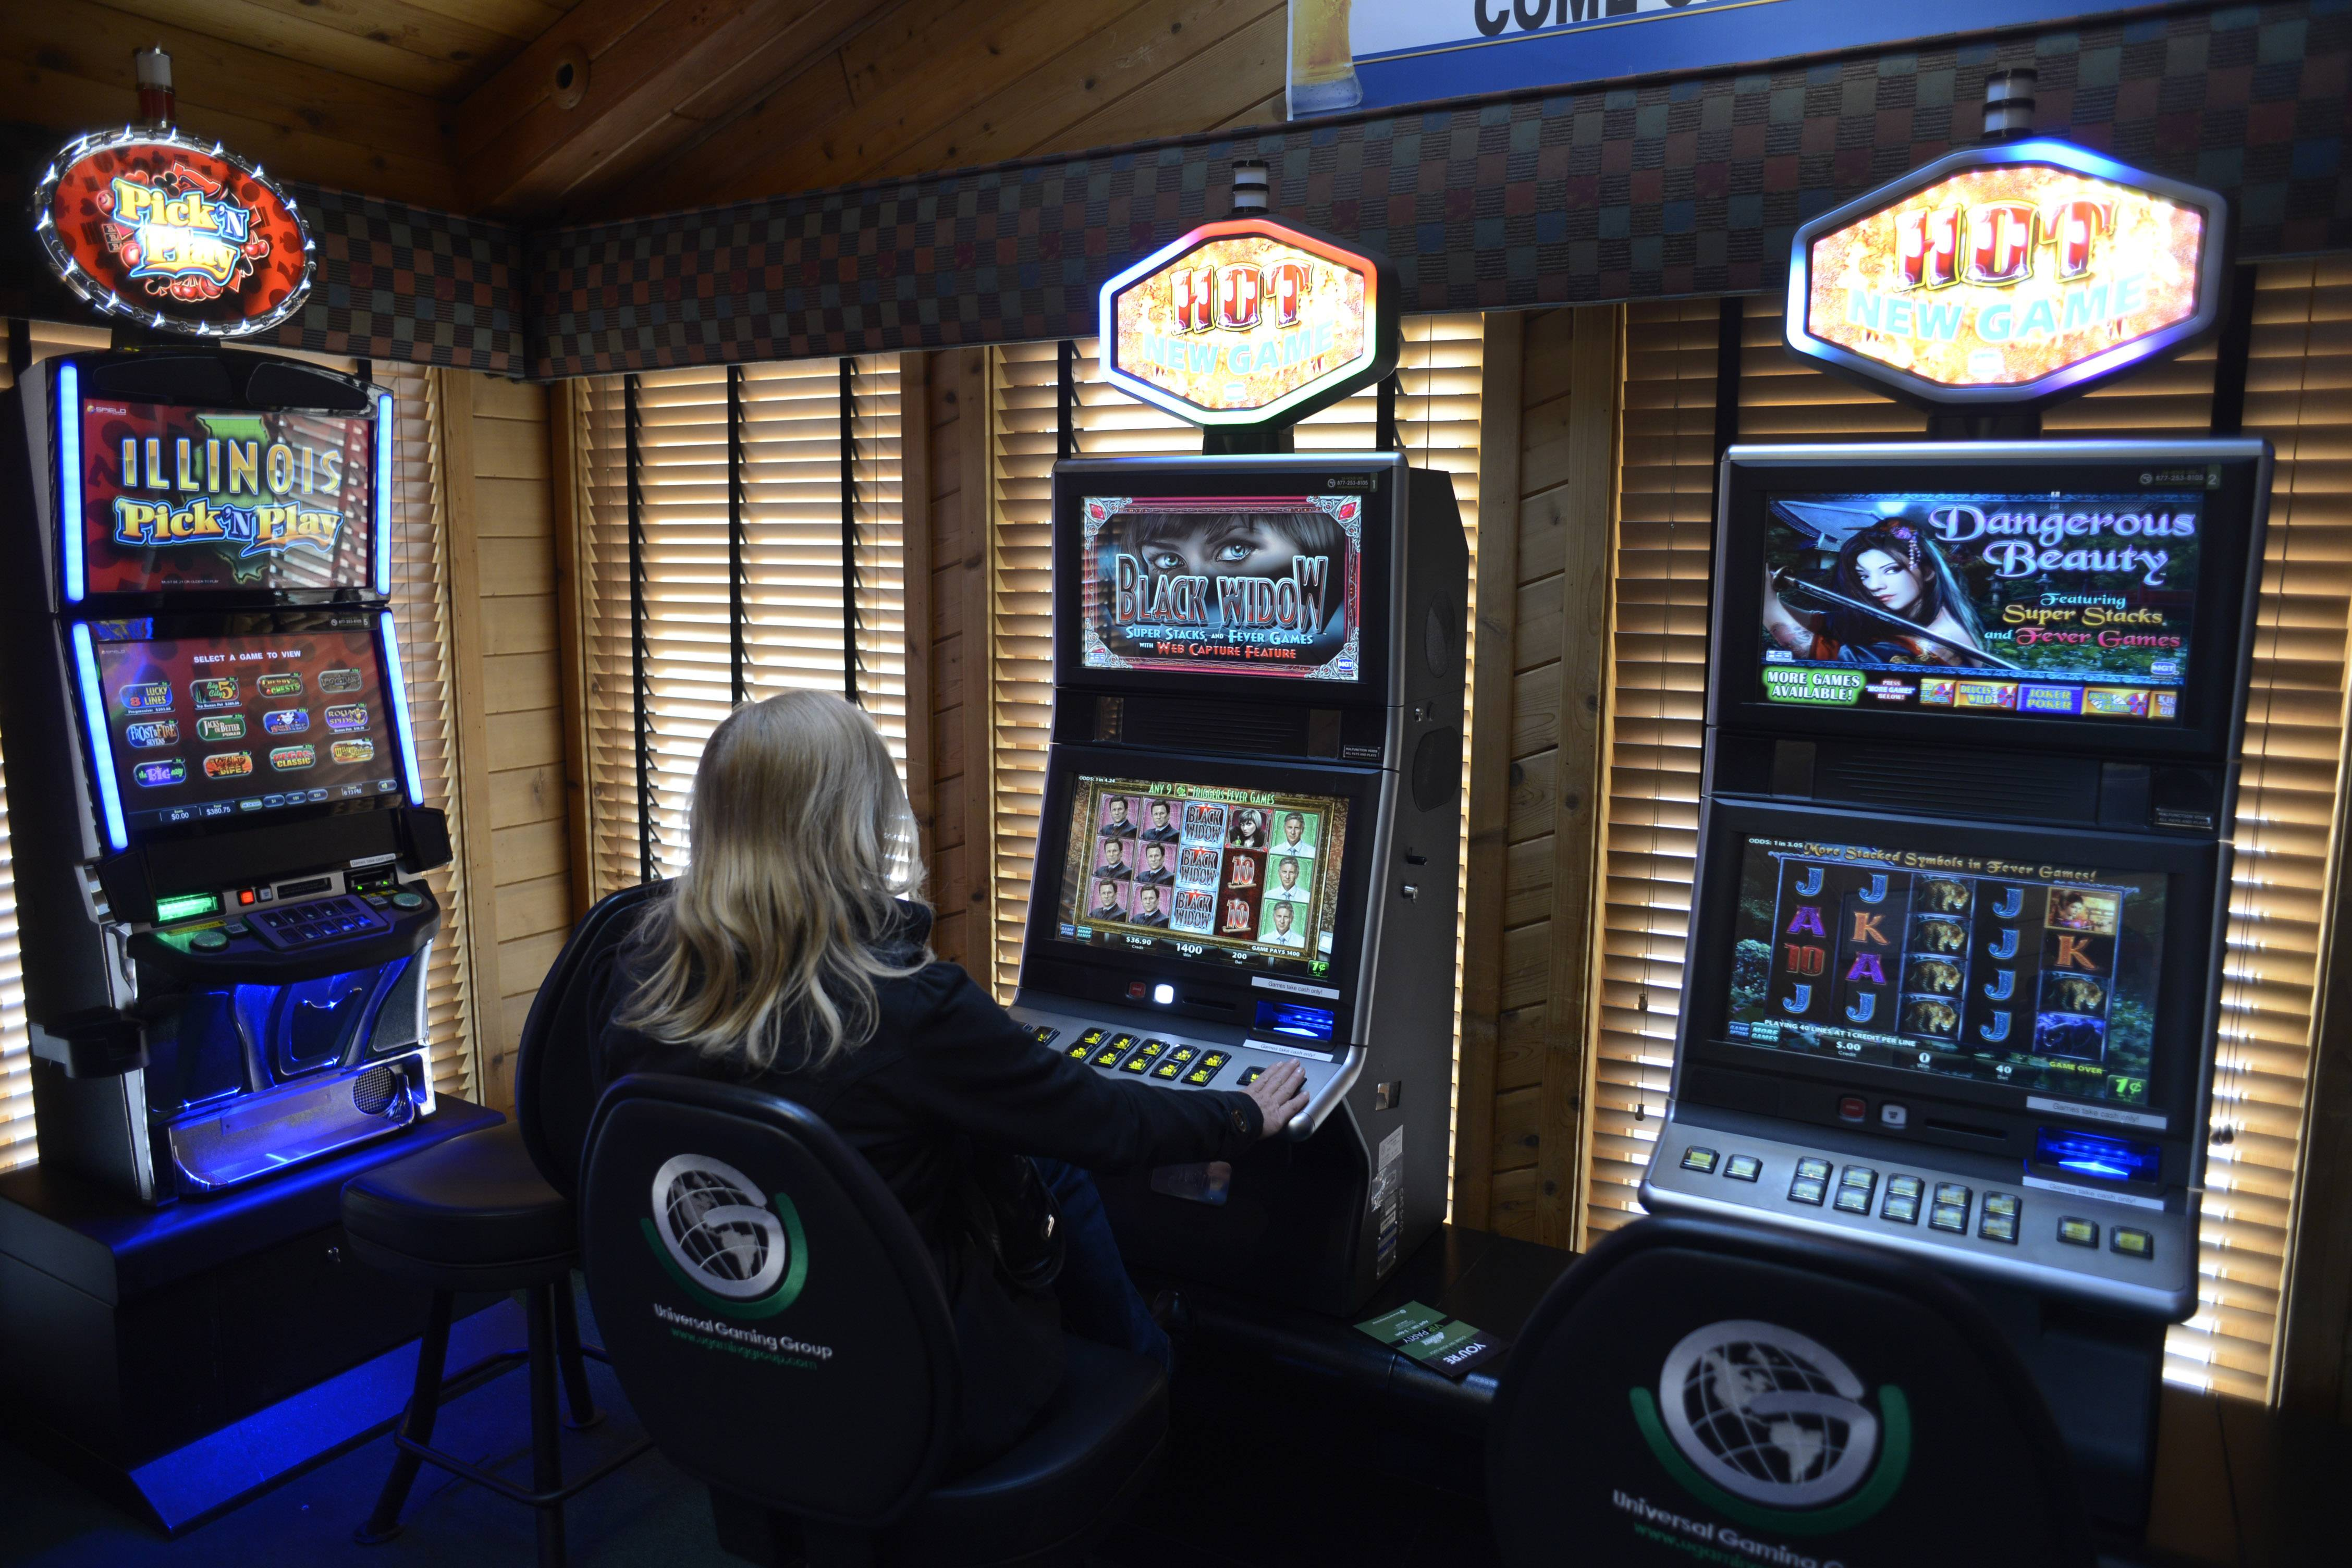 Batavia ready to allow video gambling?